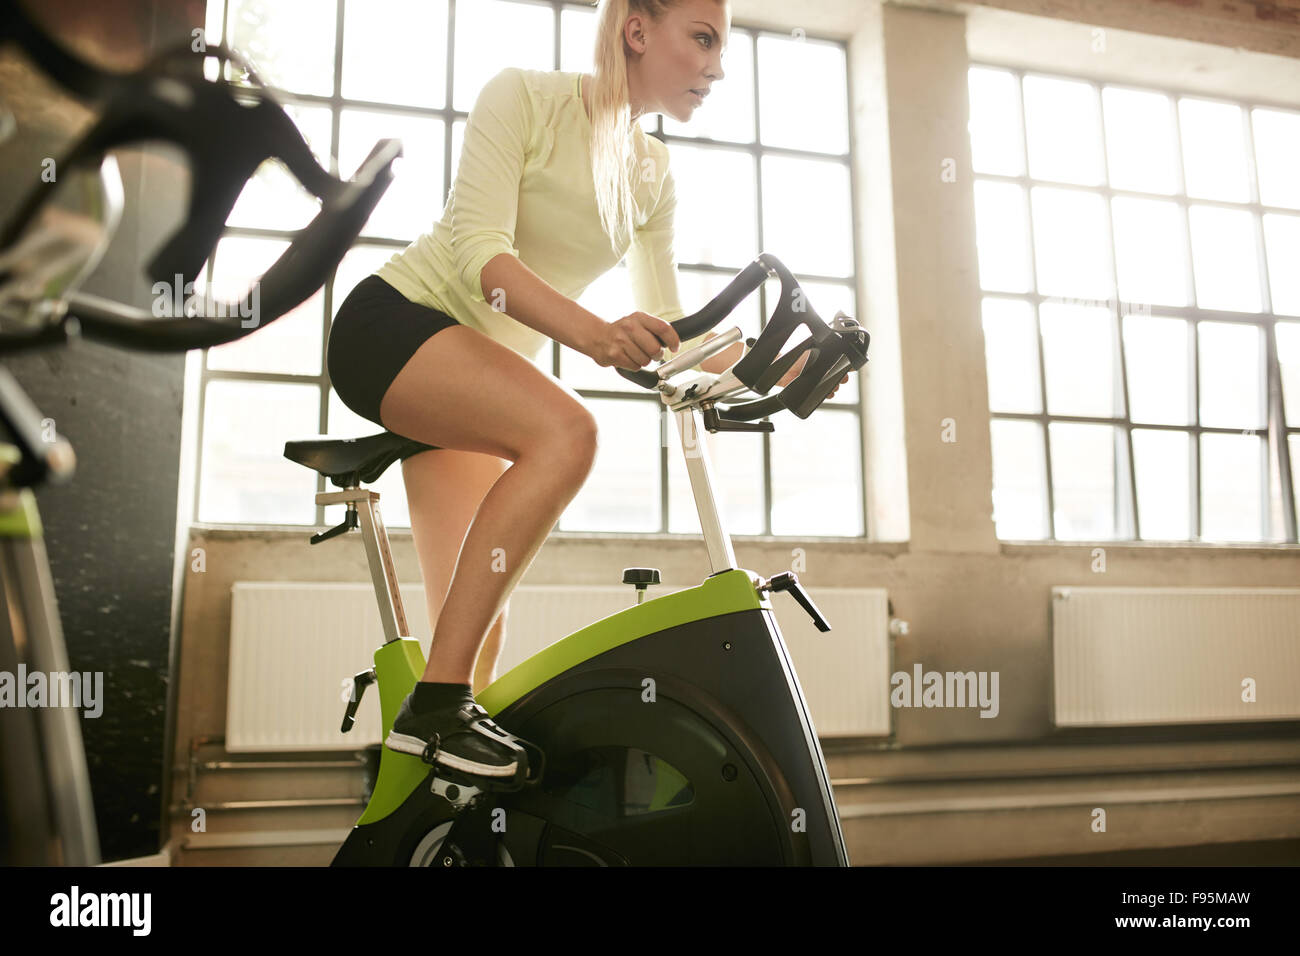 Fitness woman on bicycle doing spinning at gym. Fit young female working out on gym bike. - Stock Image